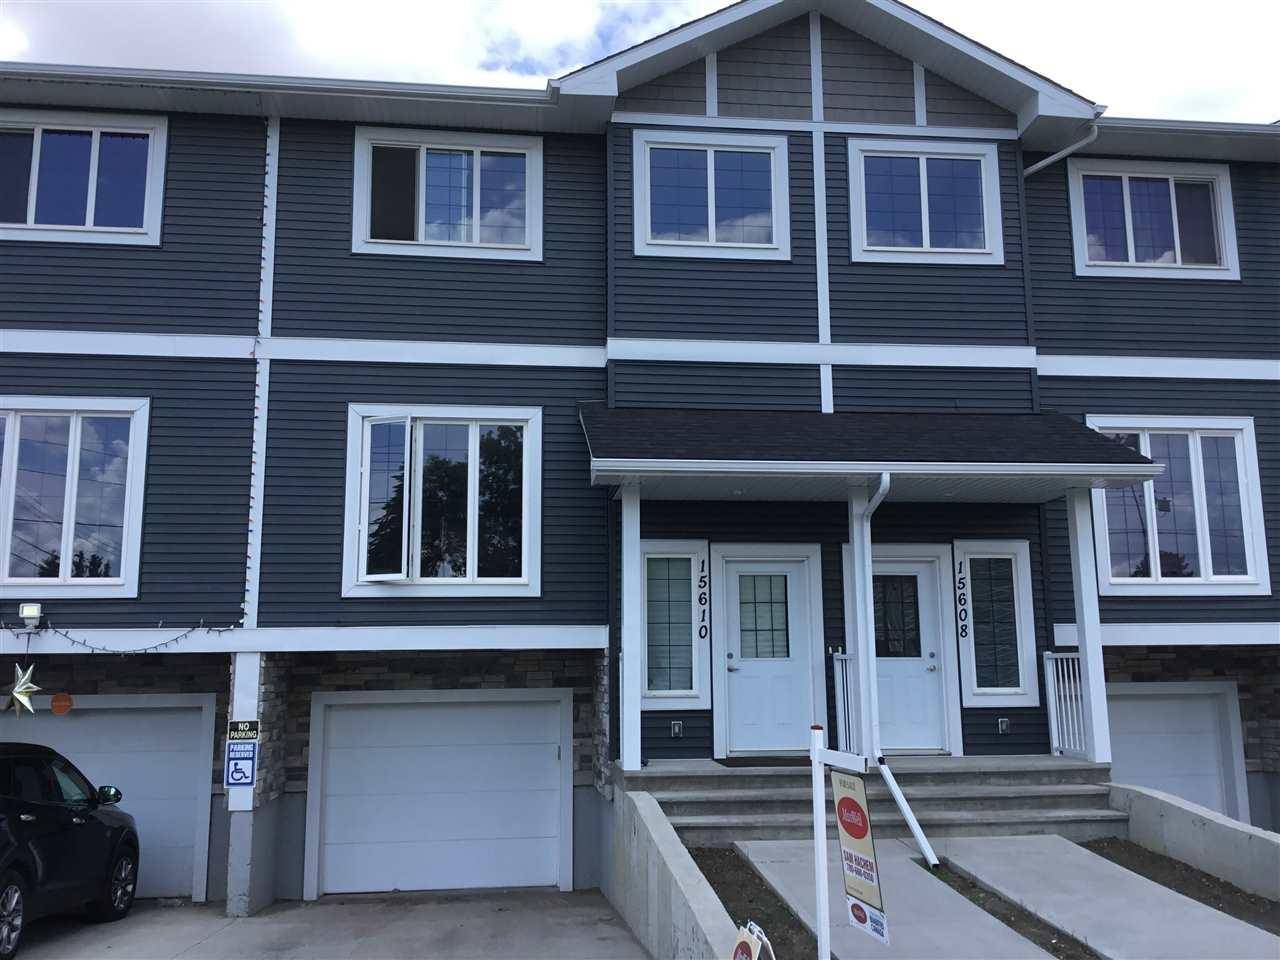 Townhouse for sale at 15610 97 Ave Nw Edmonton Alberta - MLS: E4163866